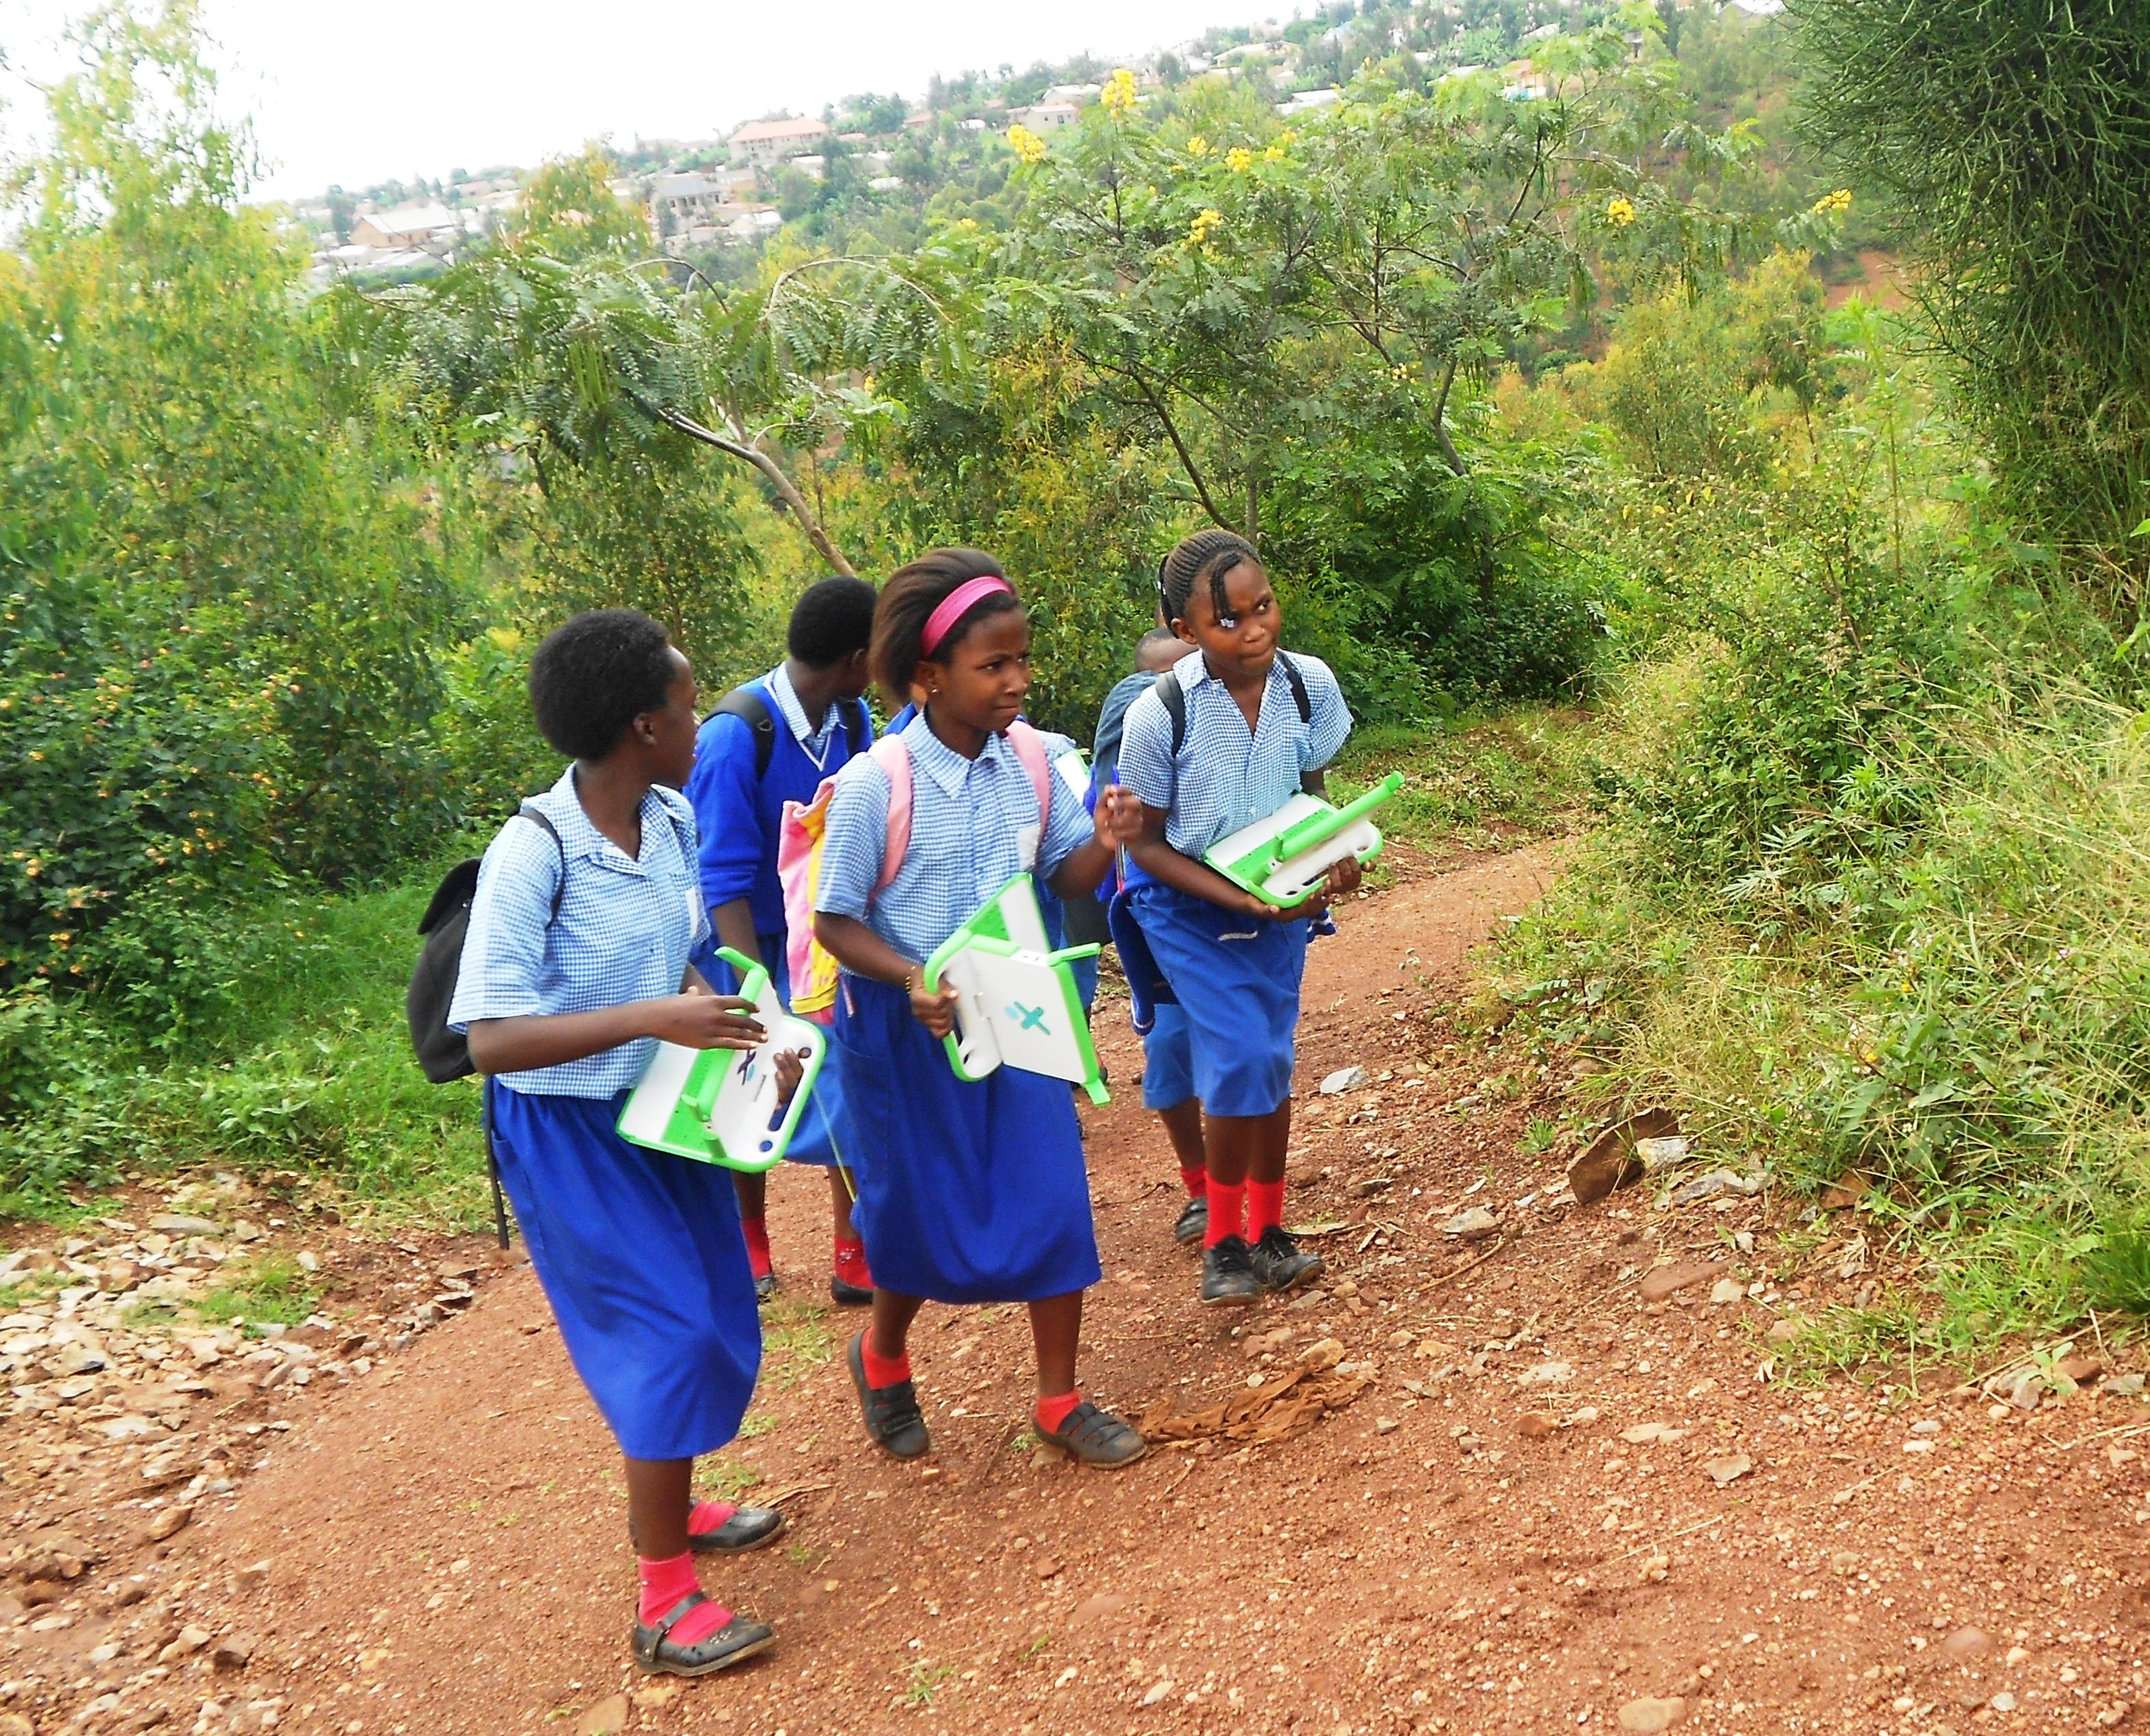 File:Children with OLPC laptops on the way home.jpg - Wikimedia ...